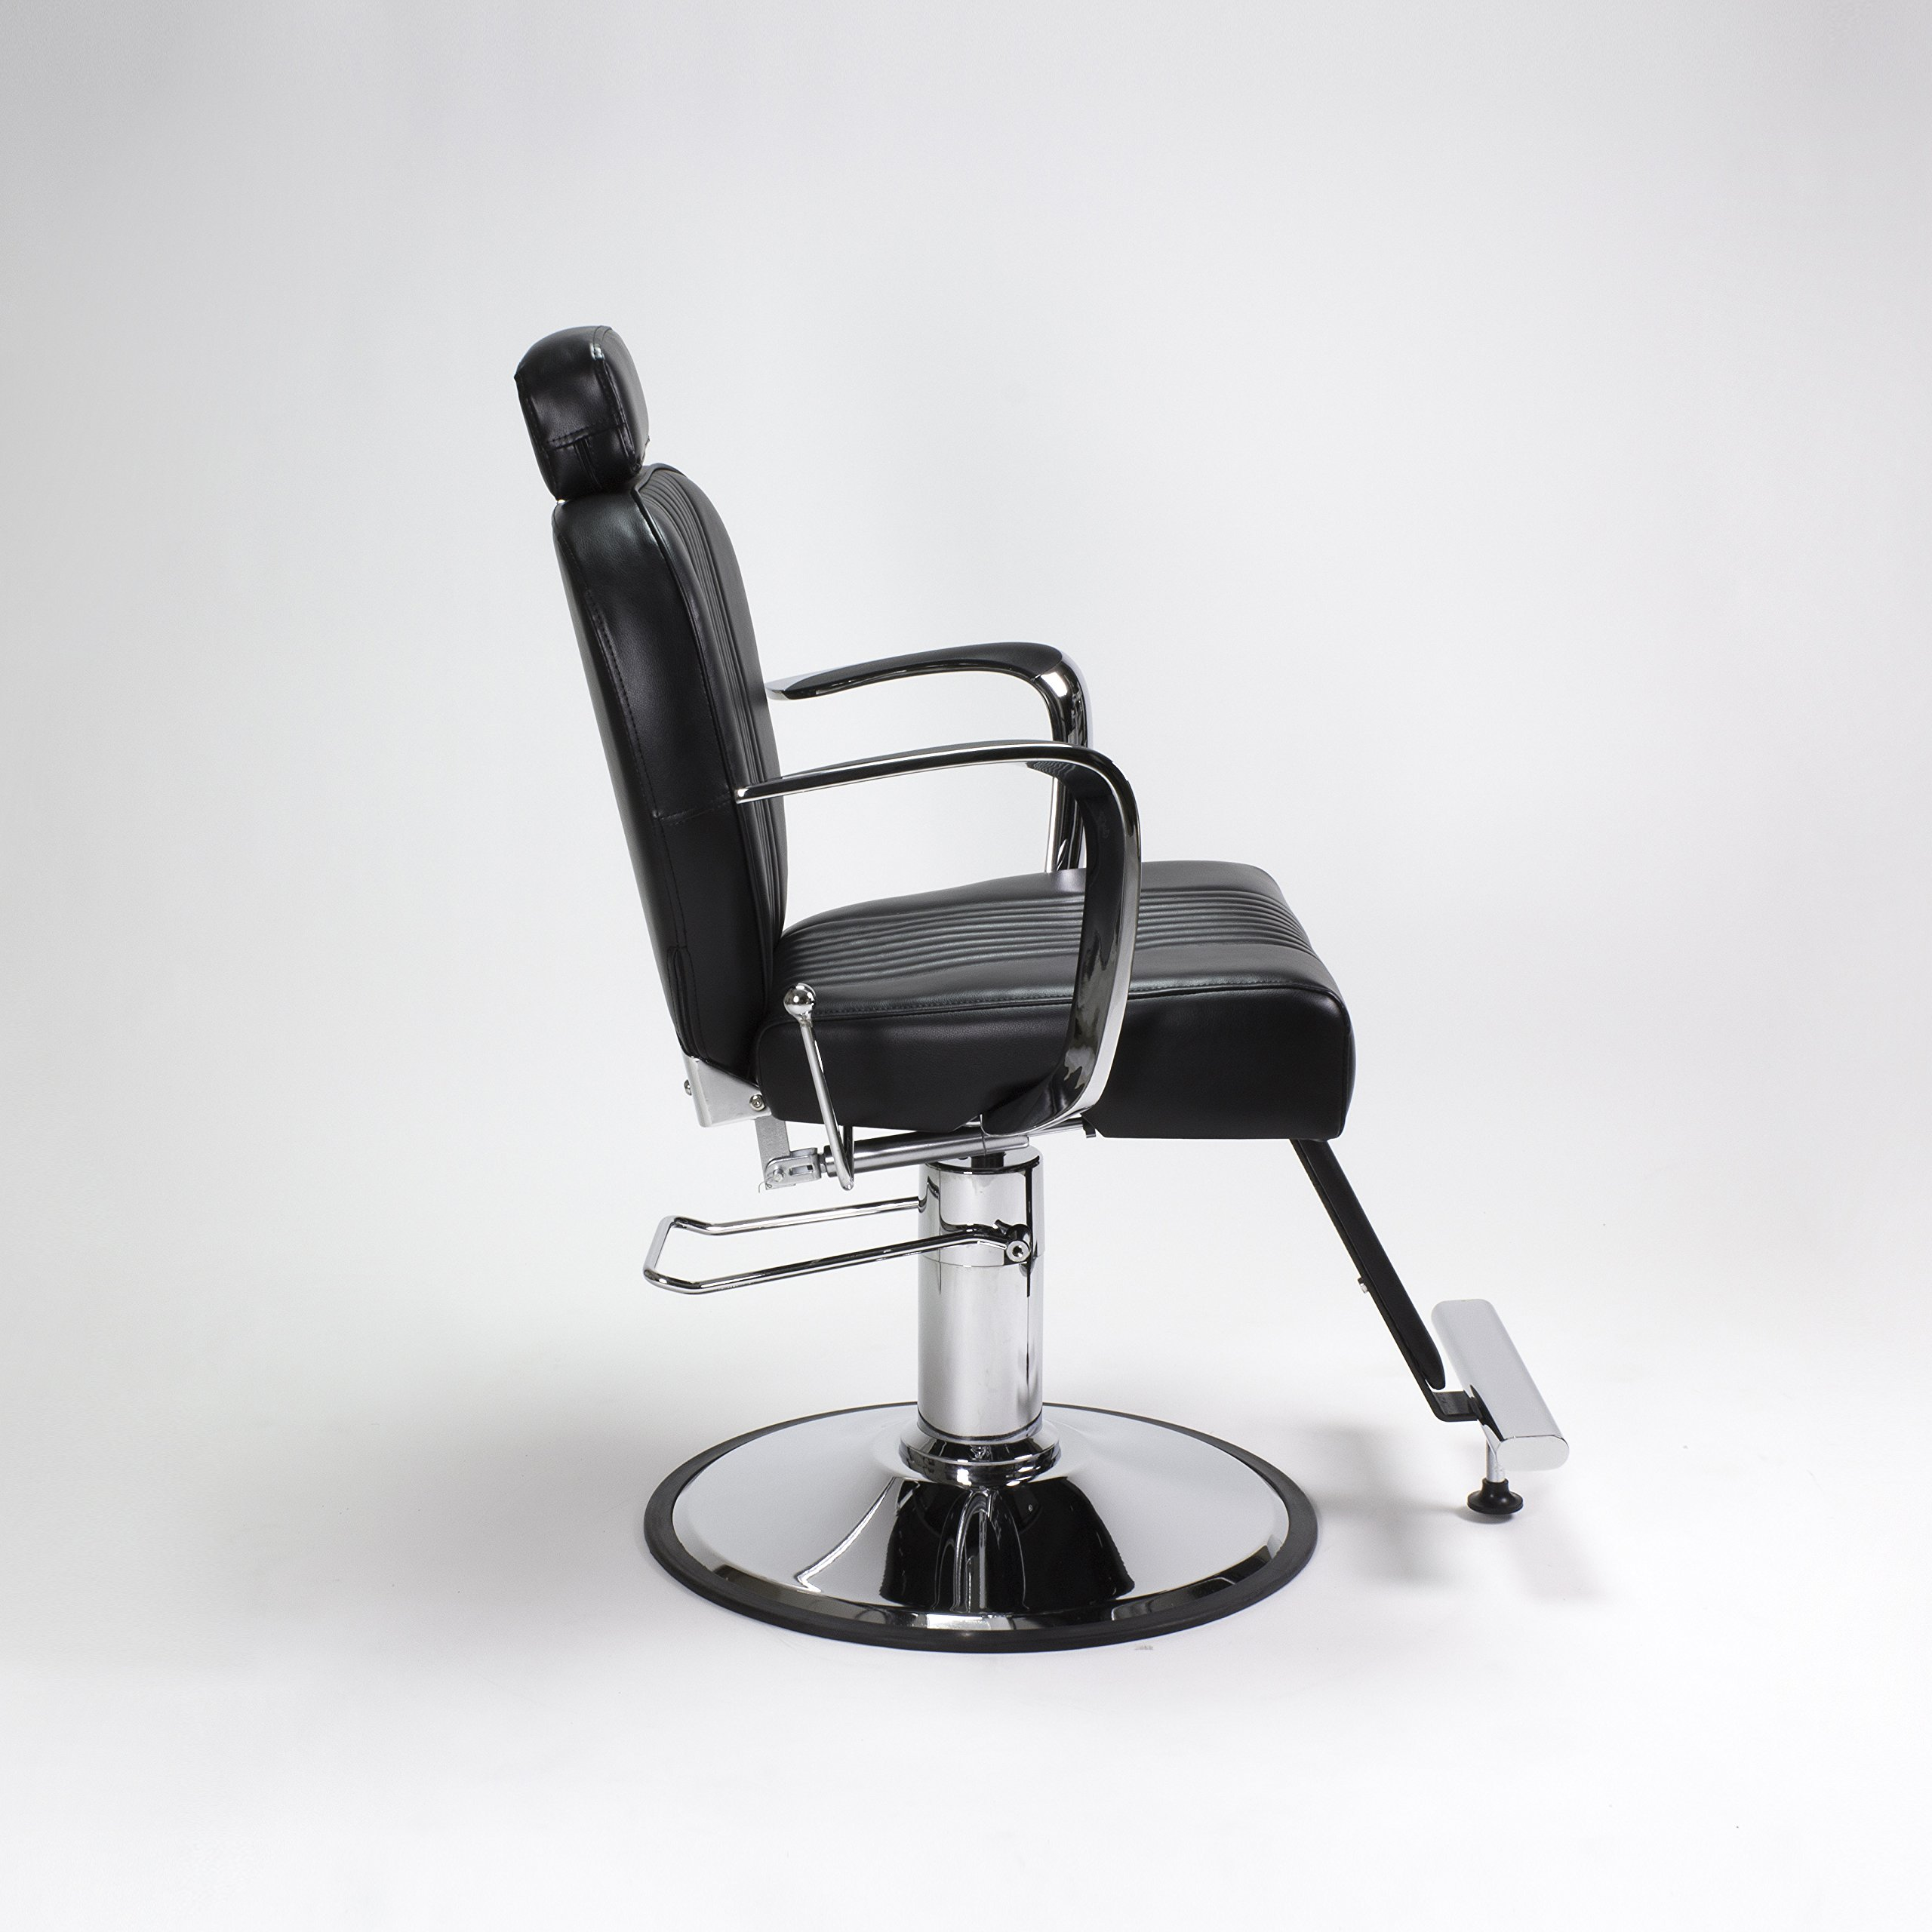 Beauty Salon Styling Chair Black AUSTEN All Purpose Salon Furniture and Barber Chairs